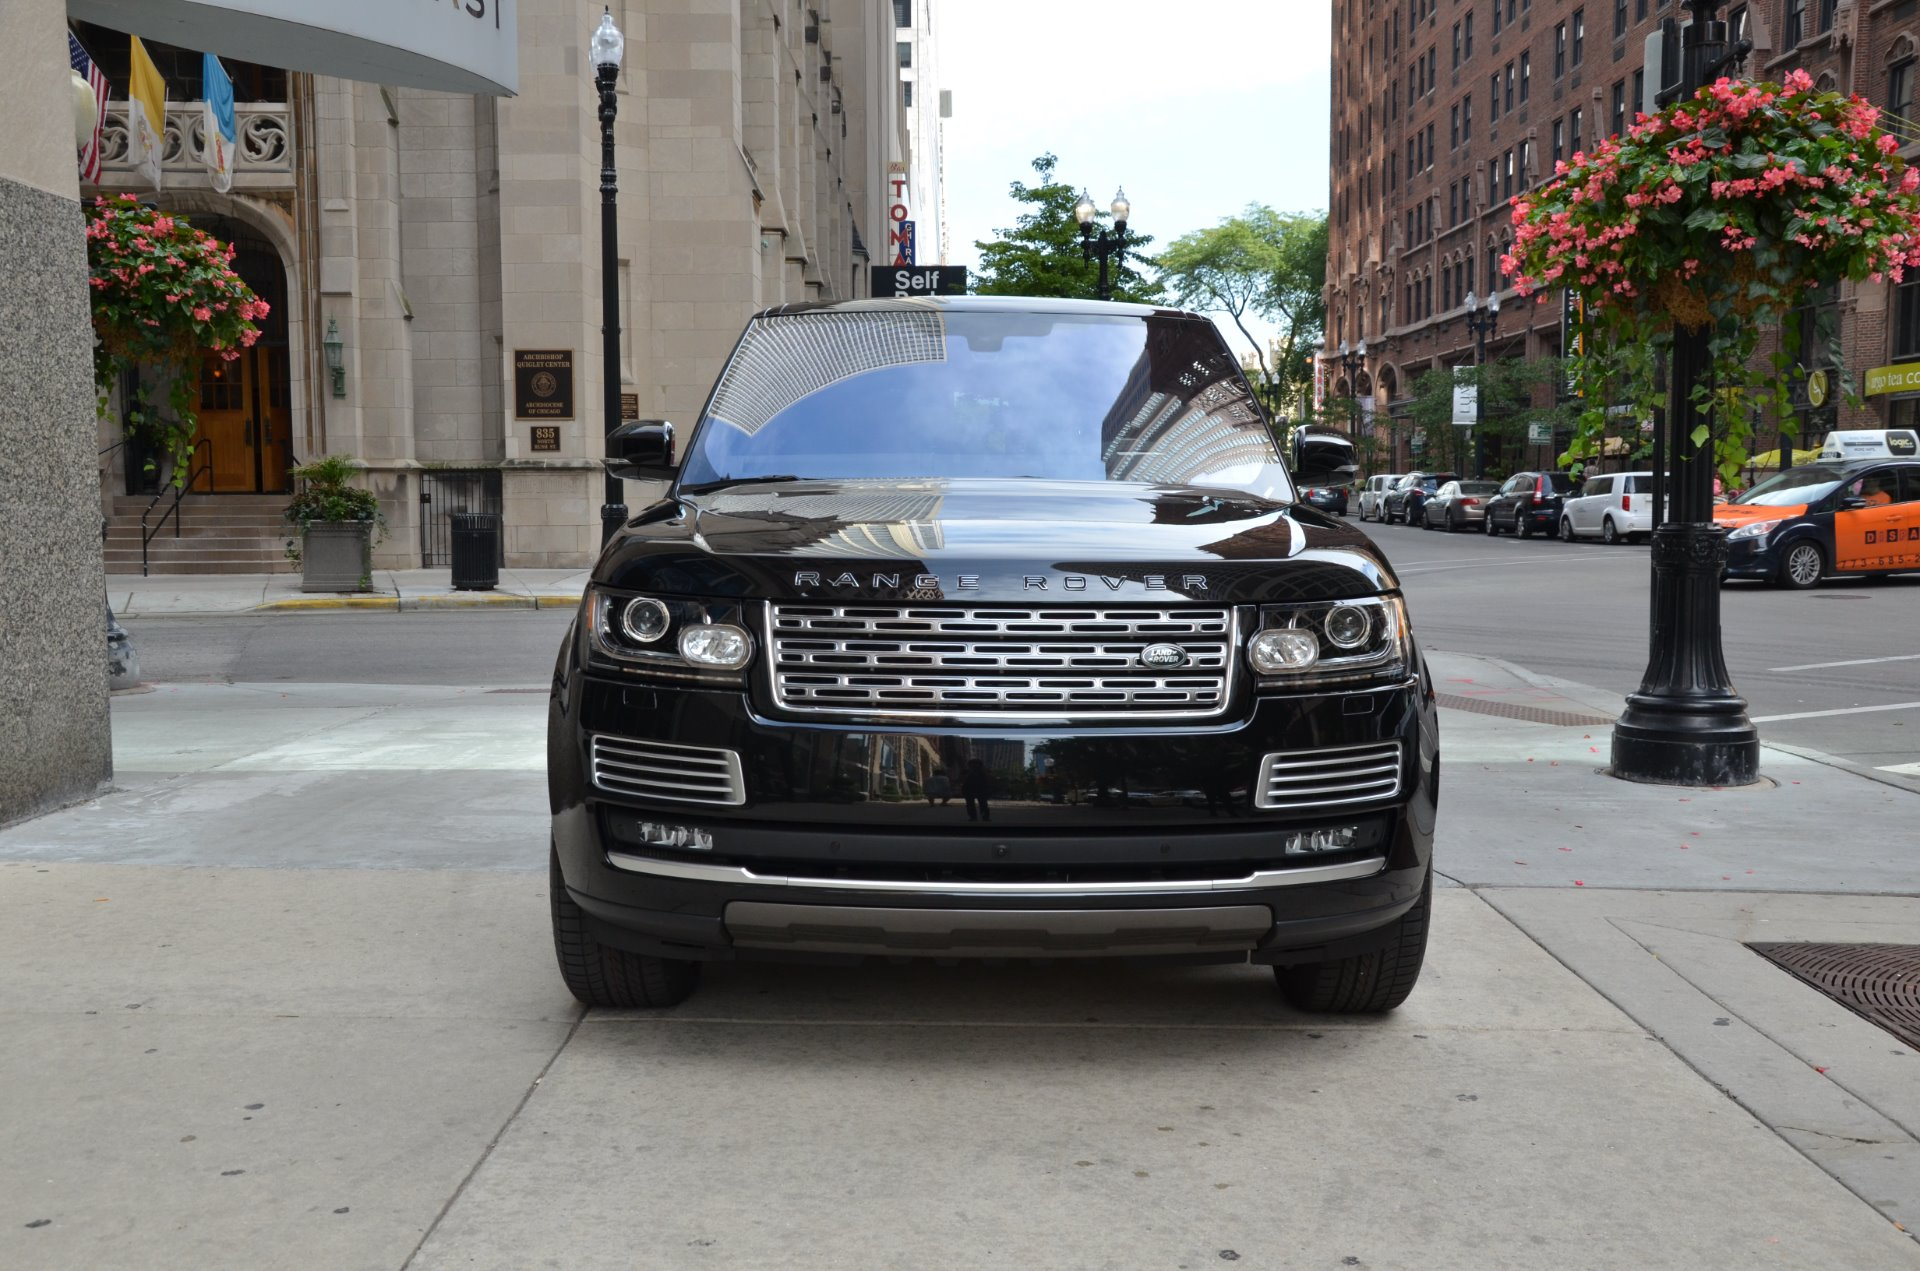 2016 land rover range rover sv autobiography lwb stock b799a for sale near chicago il il. Black Bedroom Furniture Sets. Home Design Ideas